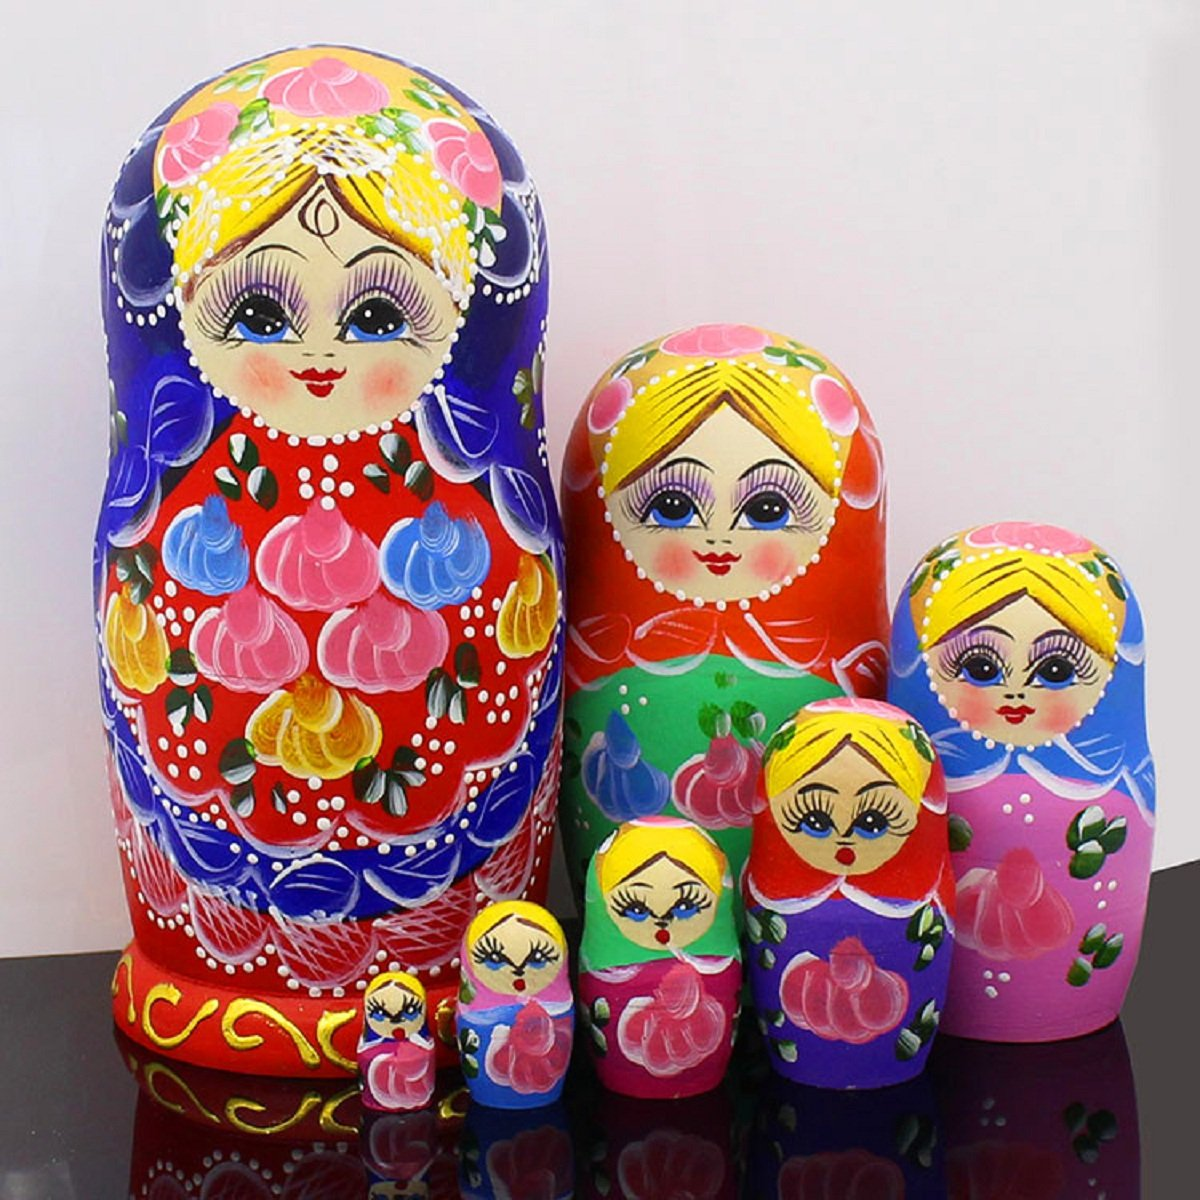 7pcs Cute and Beautiful Red Belly Girl Stacking toys/Russian nesting dolls/Wooden Matryoshka dolls